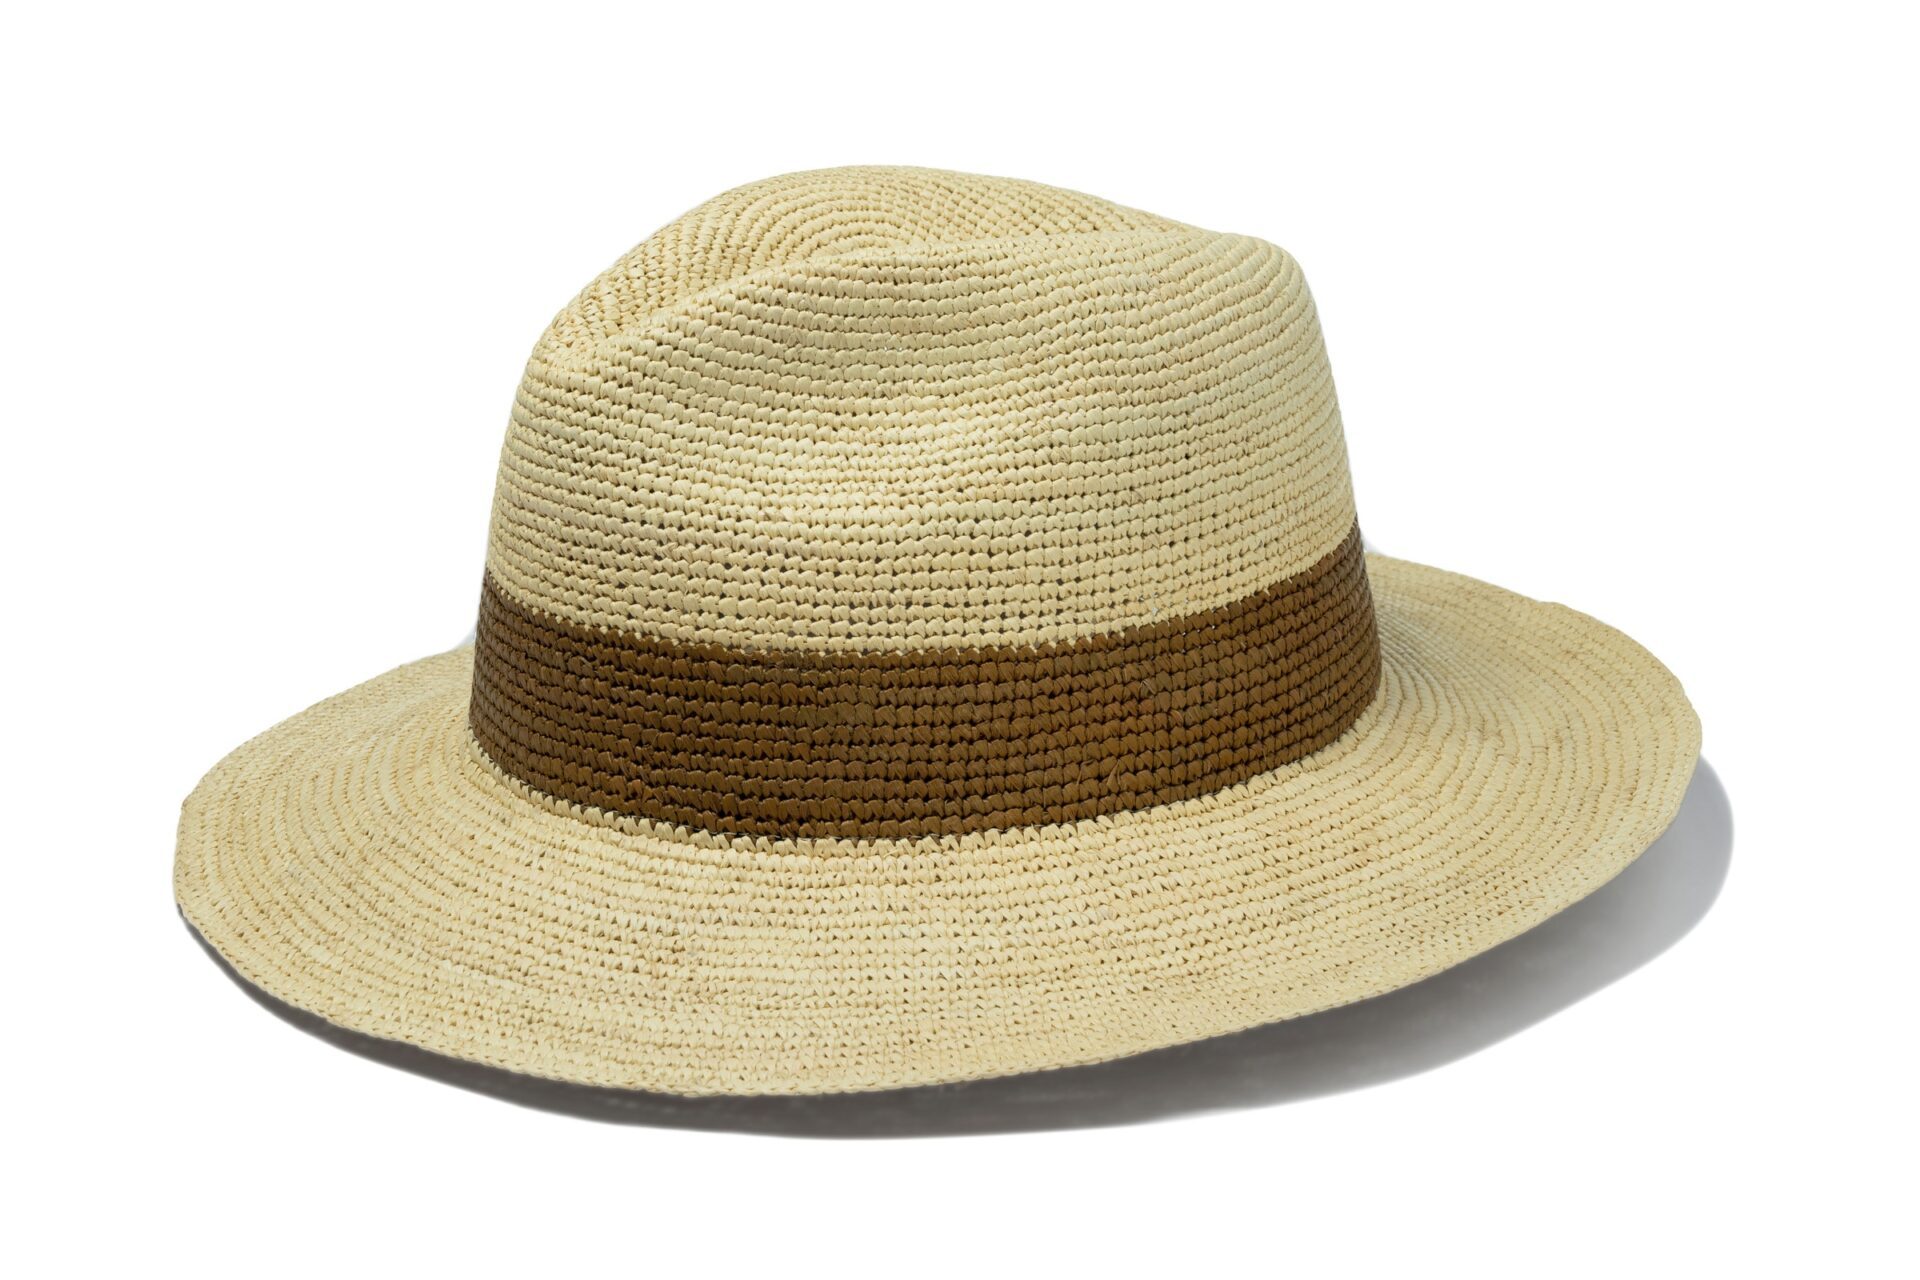 The_heligan_mens_panama_hat